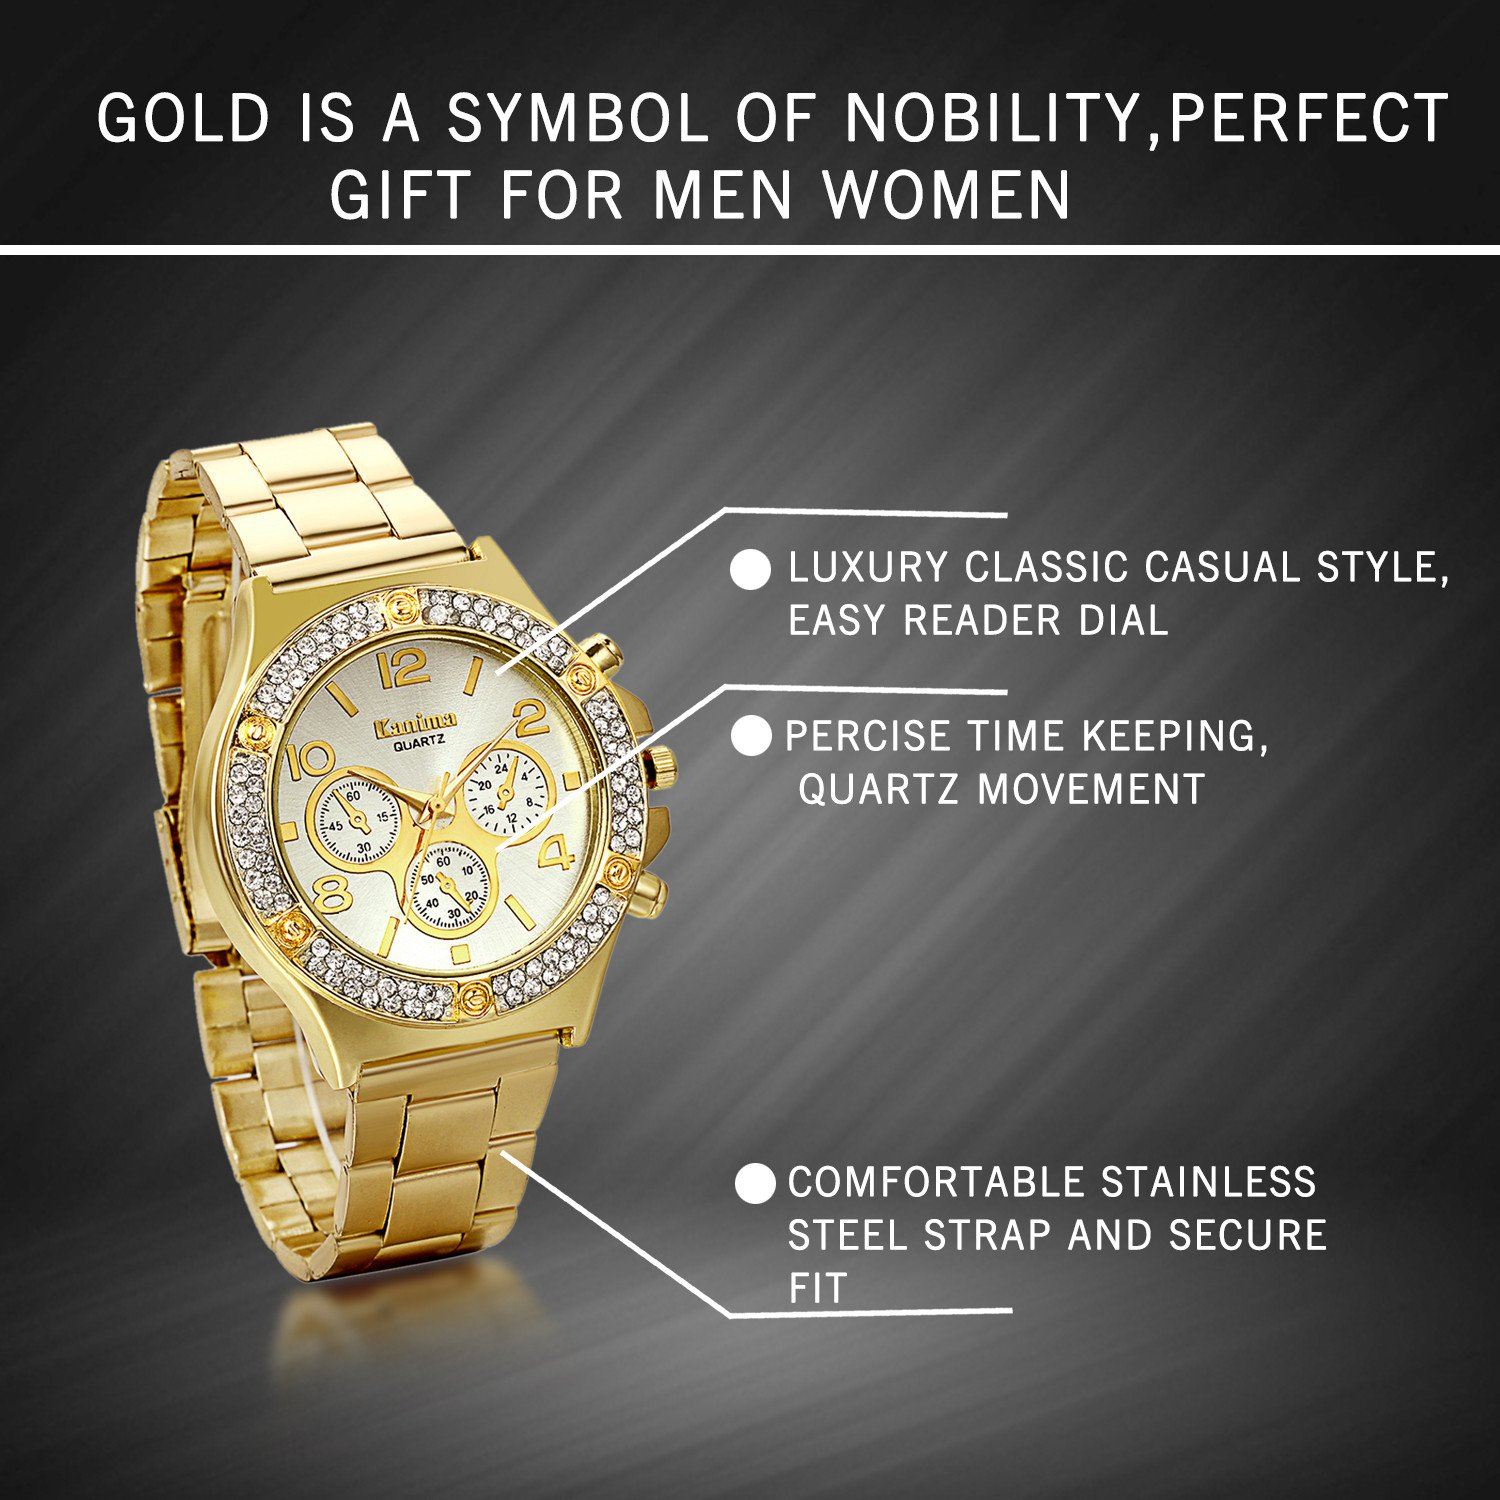 Amazon.com: JewelryWe Luxury Women Men Unisex Gold Tone Stainless Steel Band Quartz Wrist Watch Fathers Day Gift: Watches